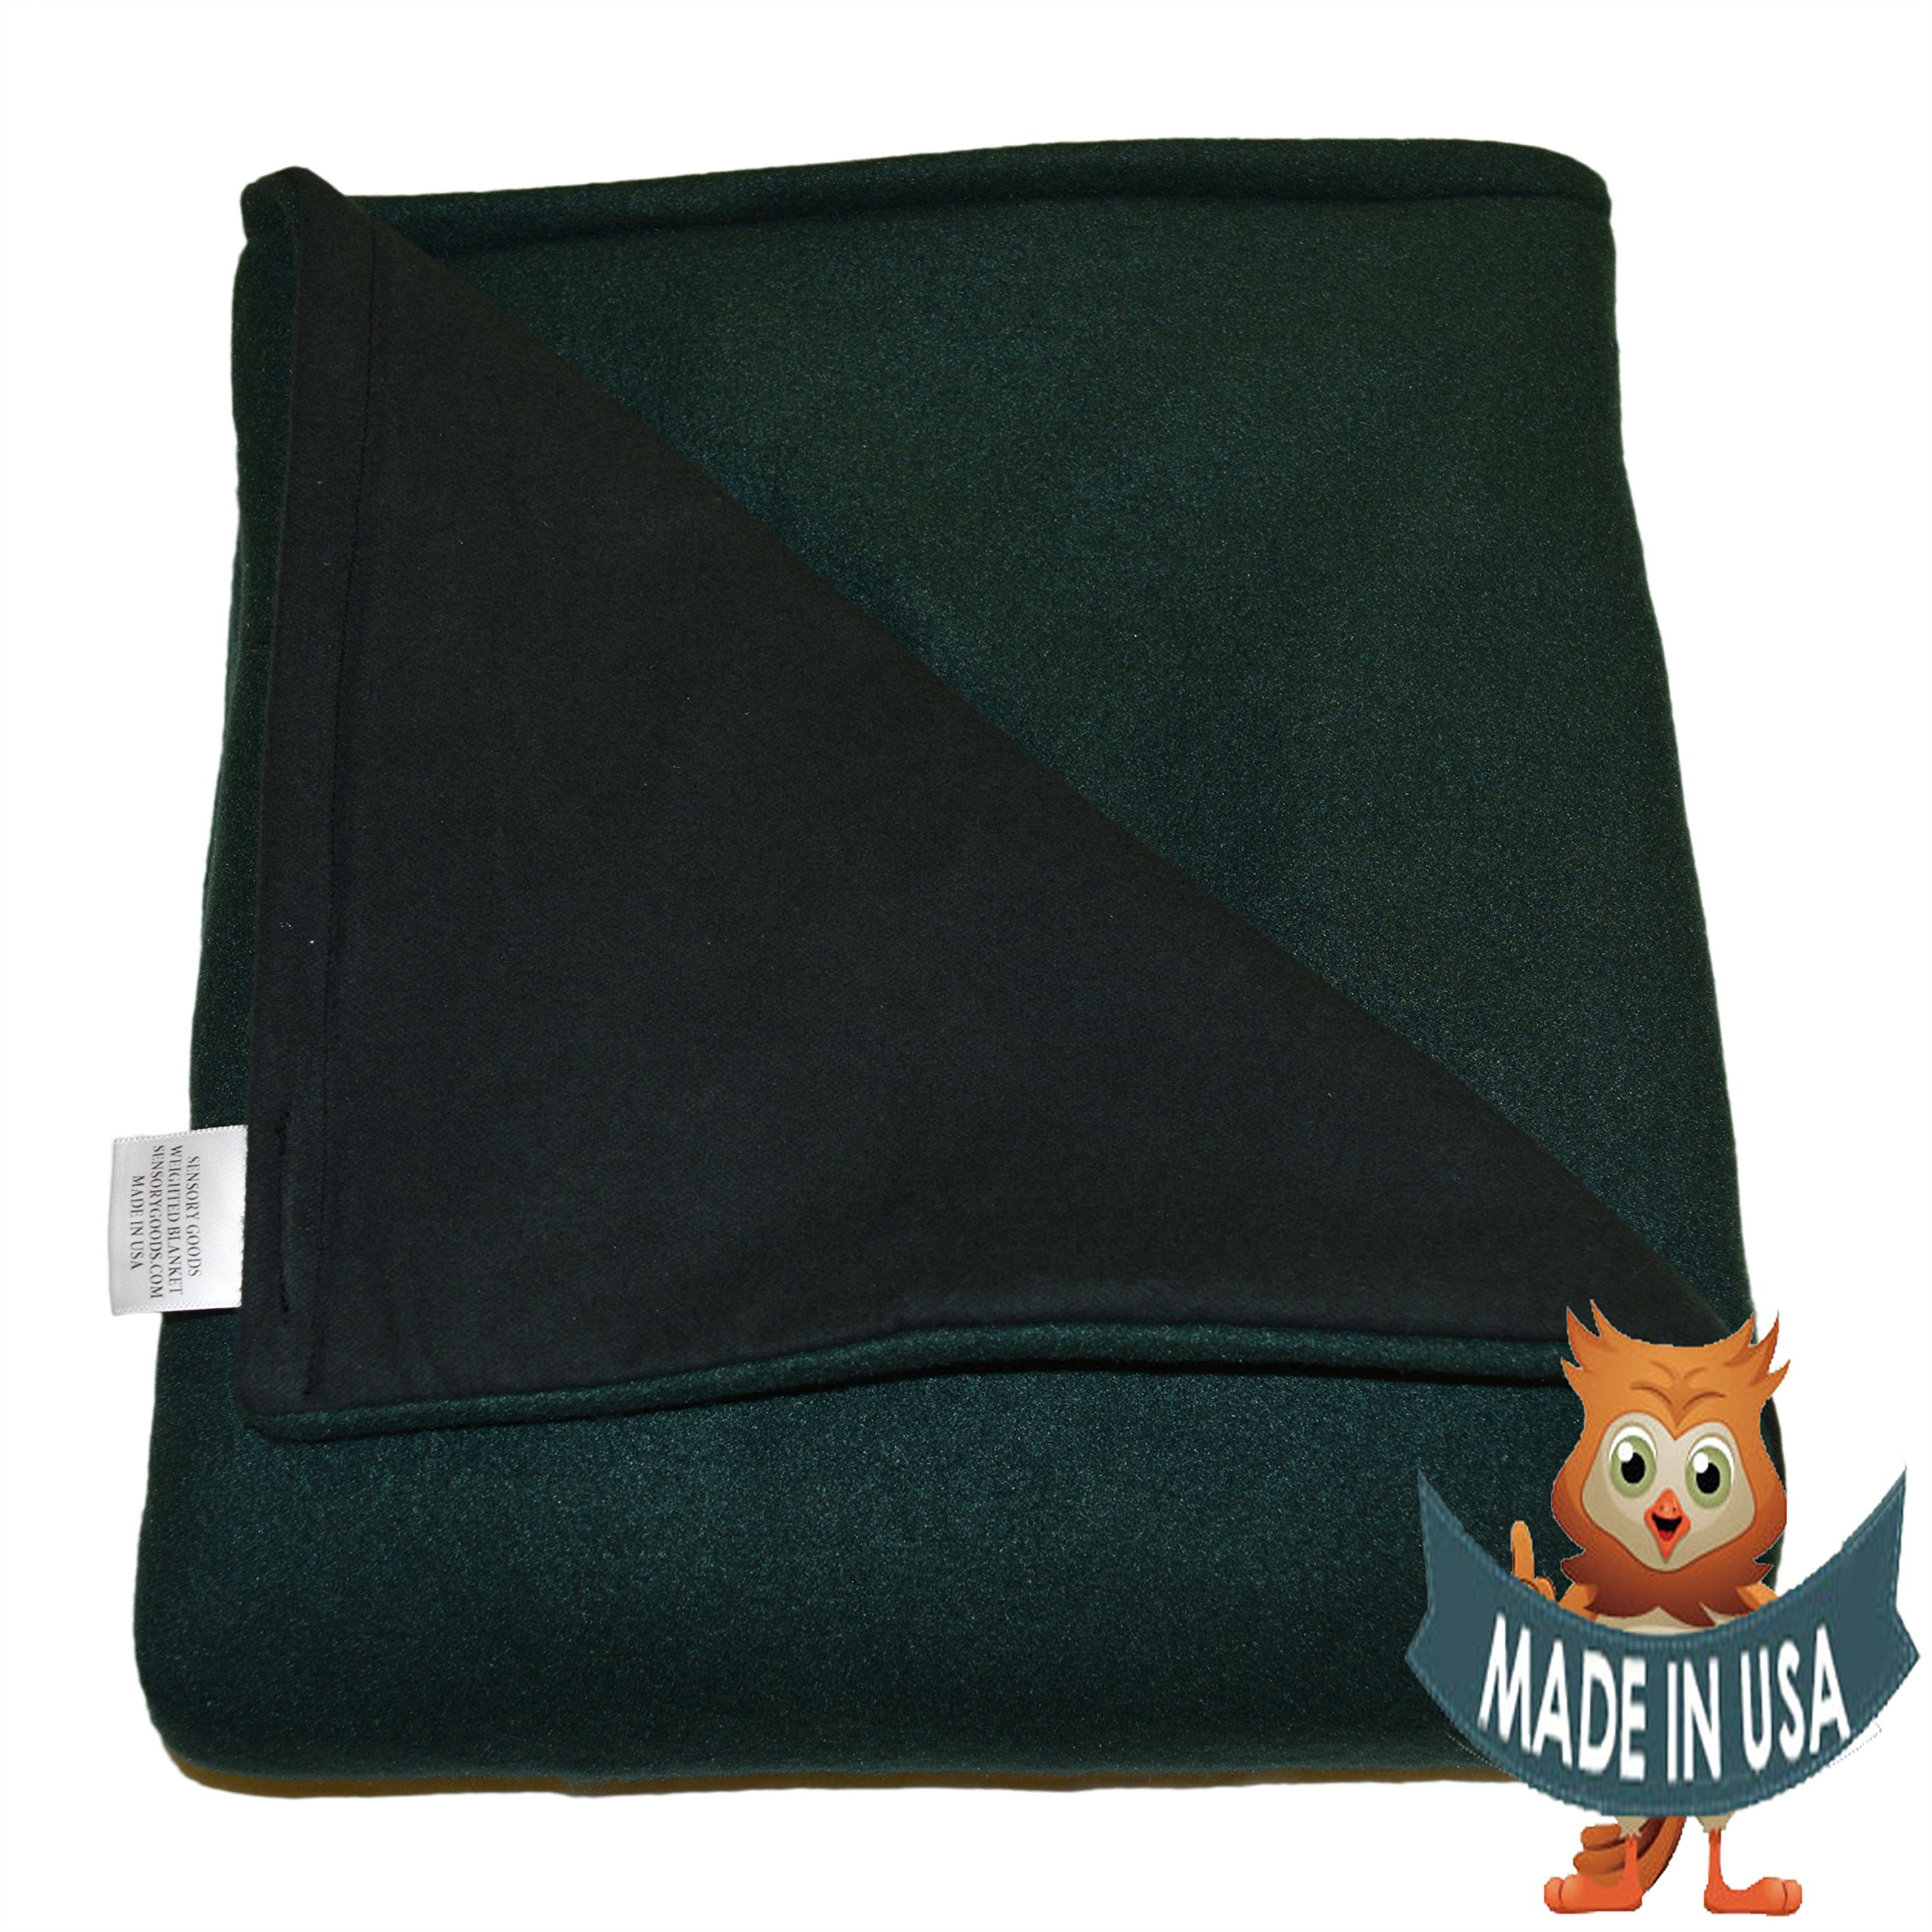 Adult Large Weighted Blanket by Sensory Goods 15lb Medium Pressure - Forest Green - Fleece/Flannel (42'' x 72'')